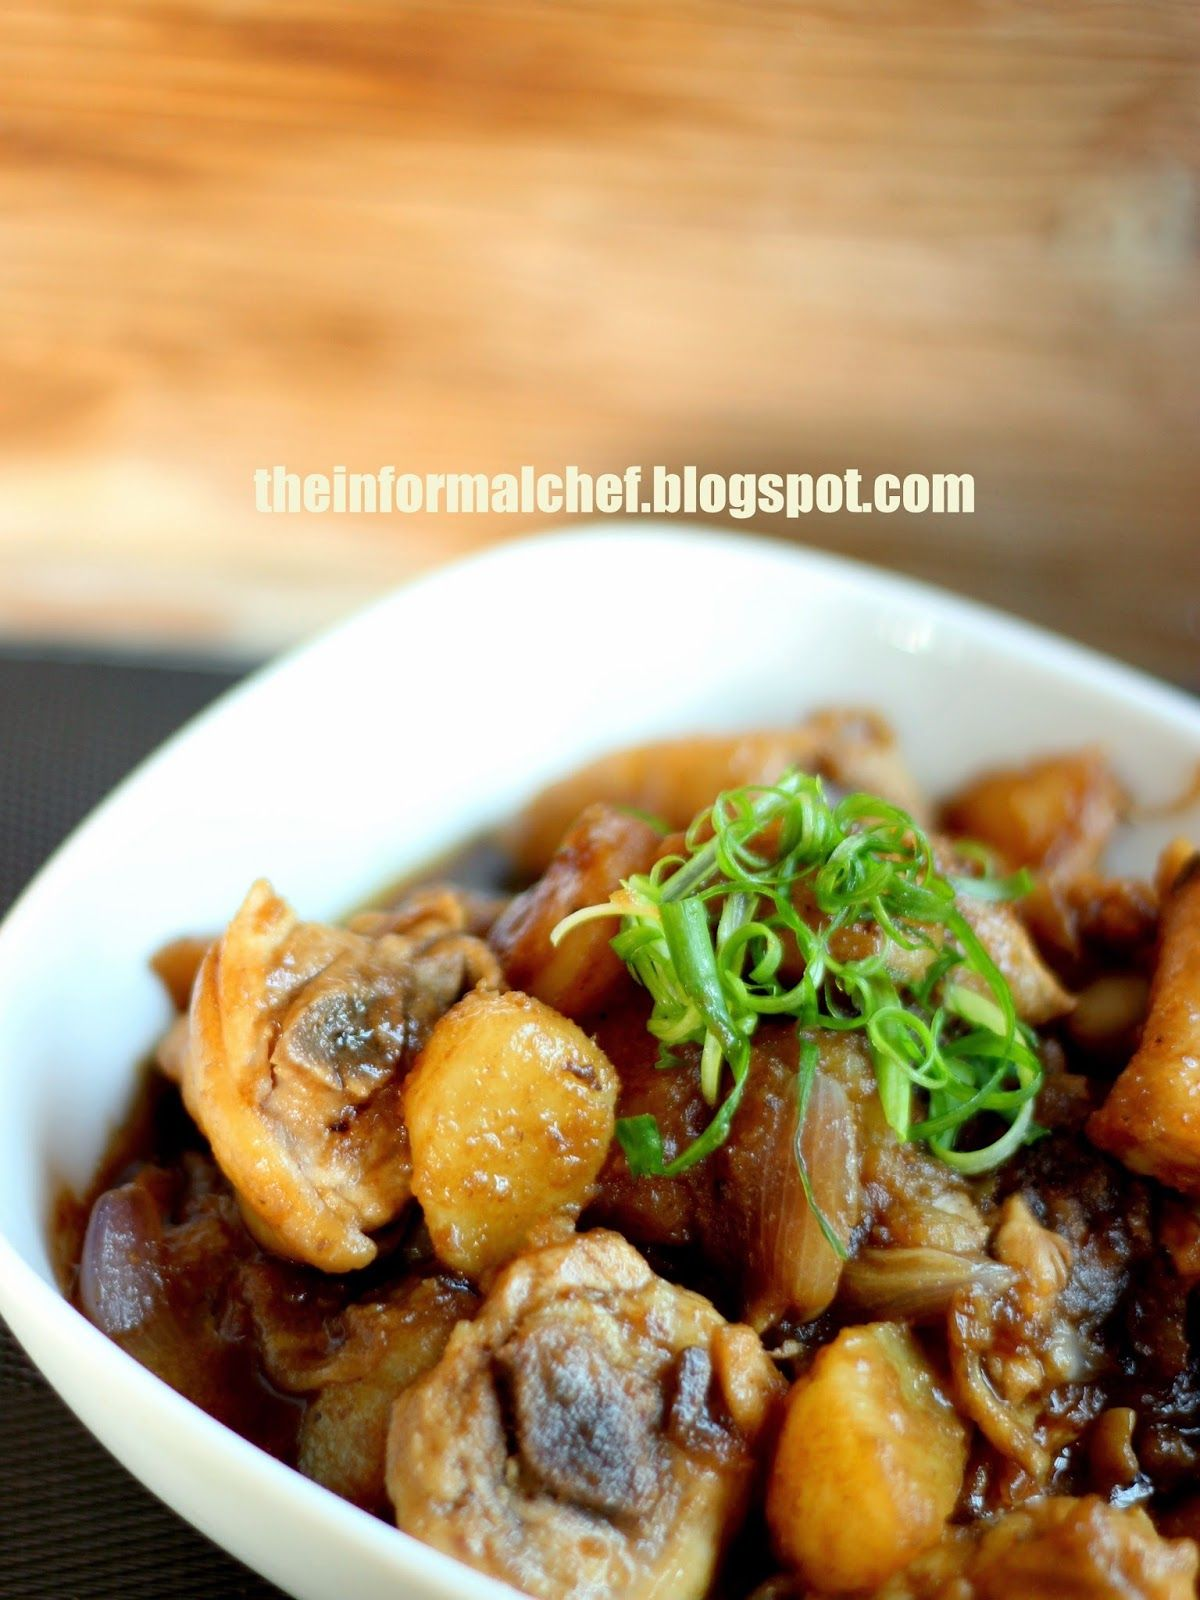 The Informal Chef: Stir-Fry Potato Chicken 马铃薯炒鸡